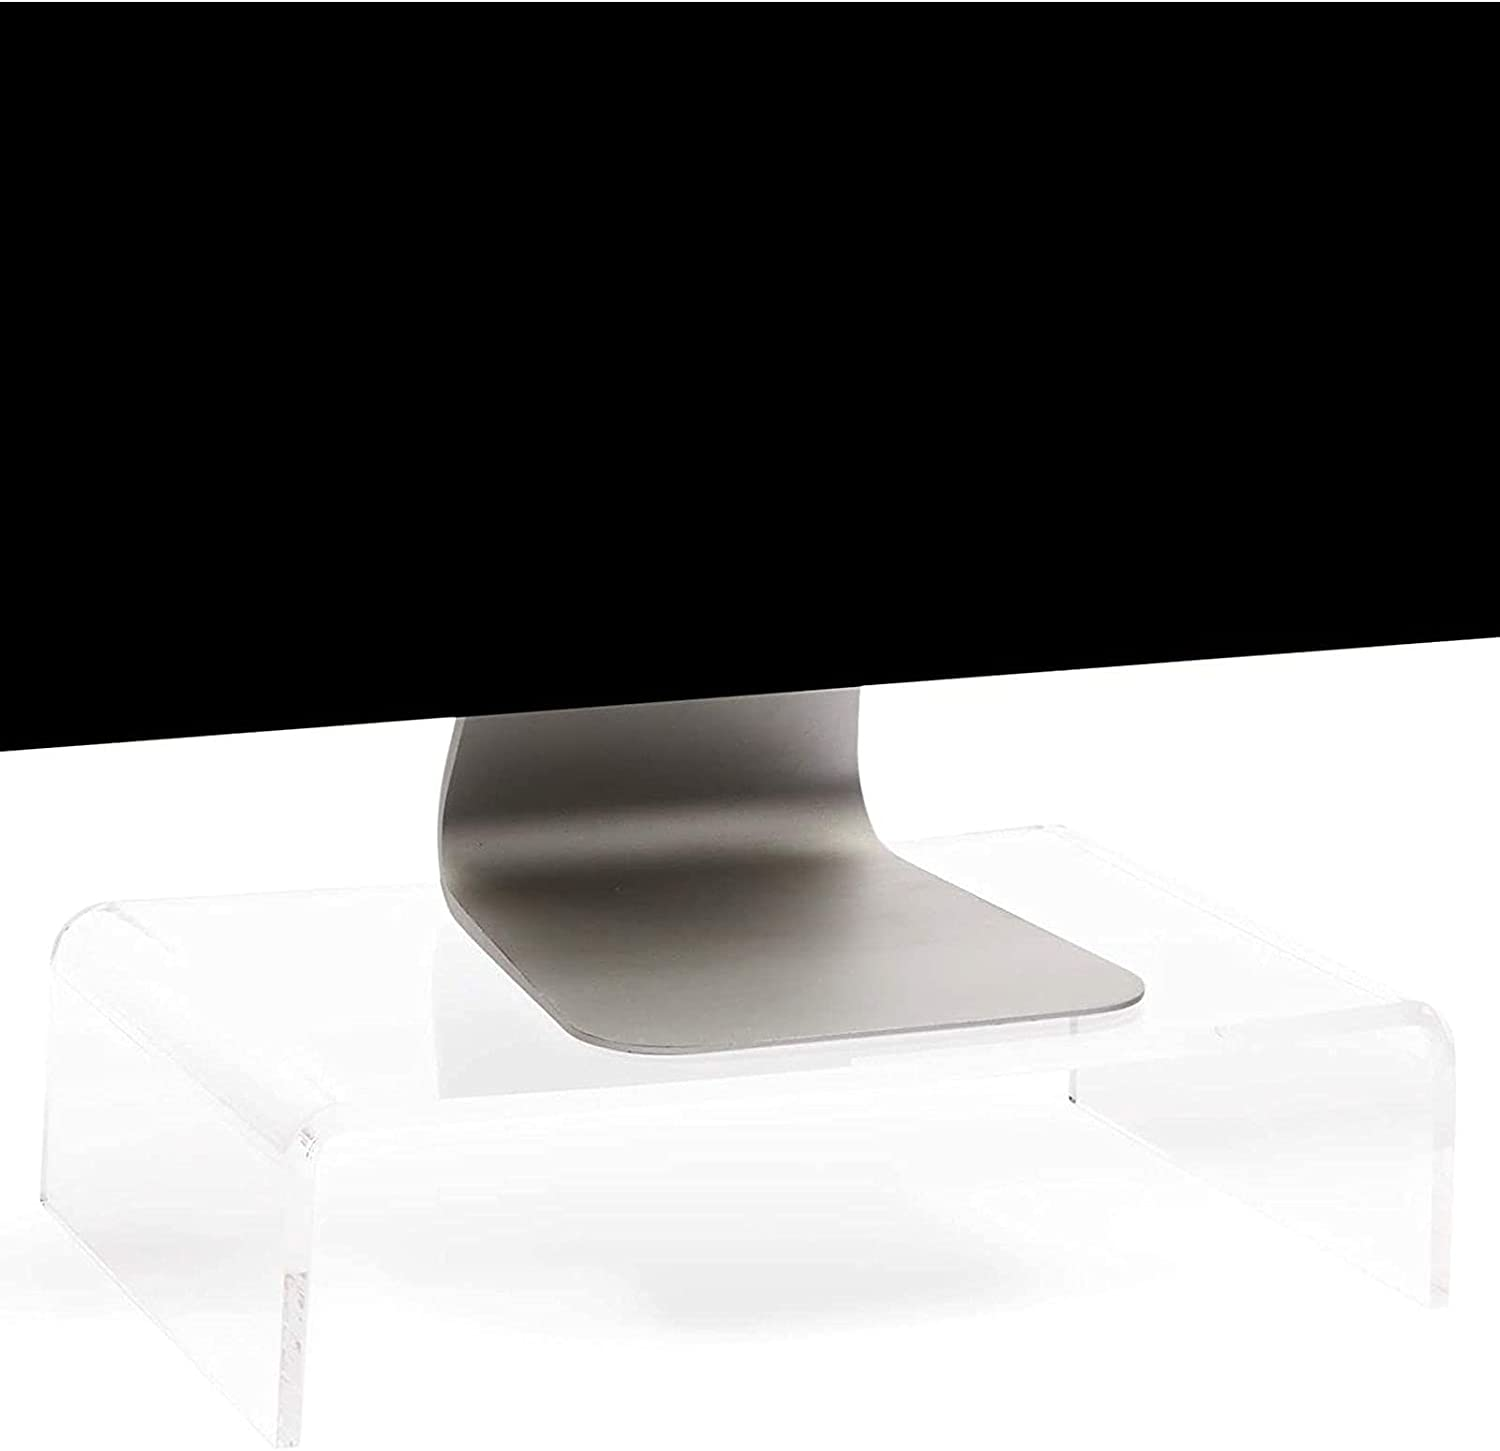 Acrylic Computer Monitor Stand, Clear Display Riser (4 x 15 x 10 Inches)